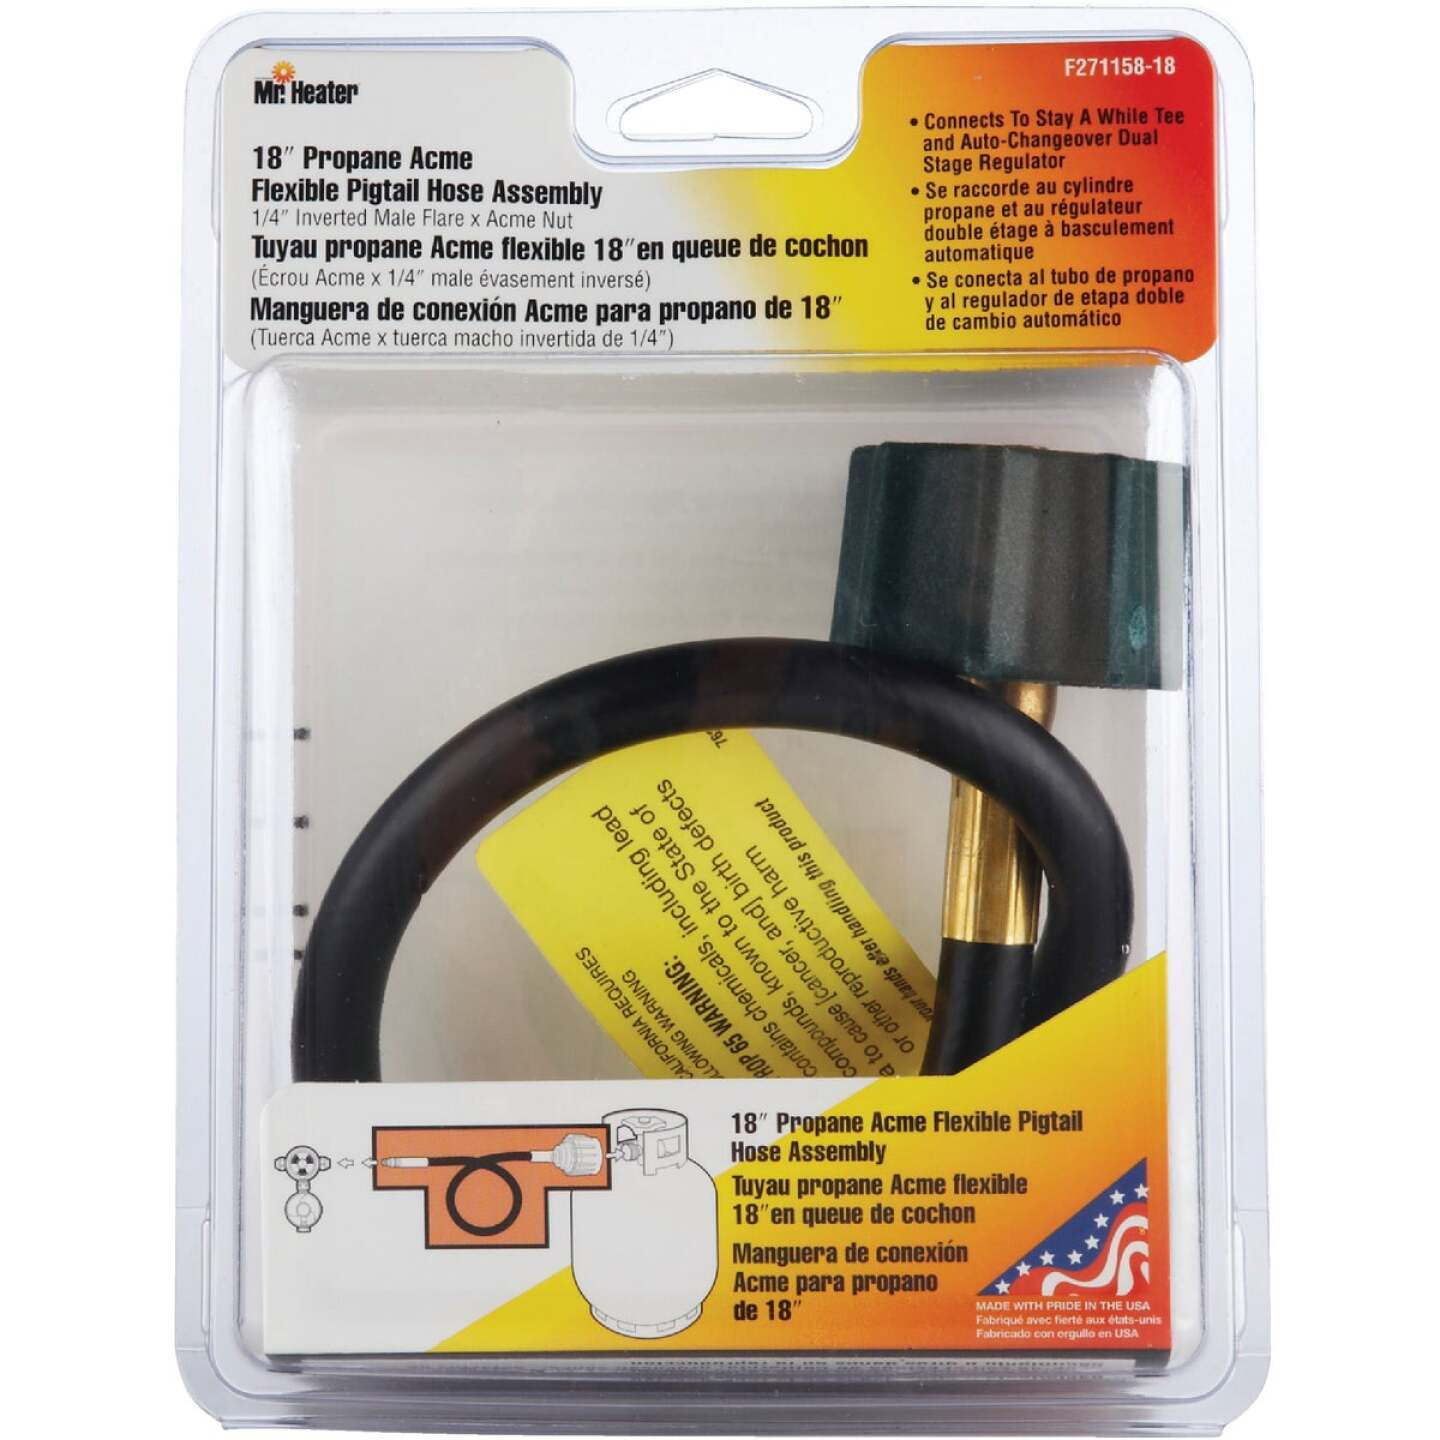 MR. HEATER 18 In. x 1/4 In. Inverted Male Flare x 3/8 In. Acme Nut LP Hose Assembly Image 2